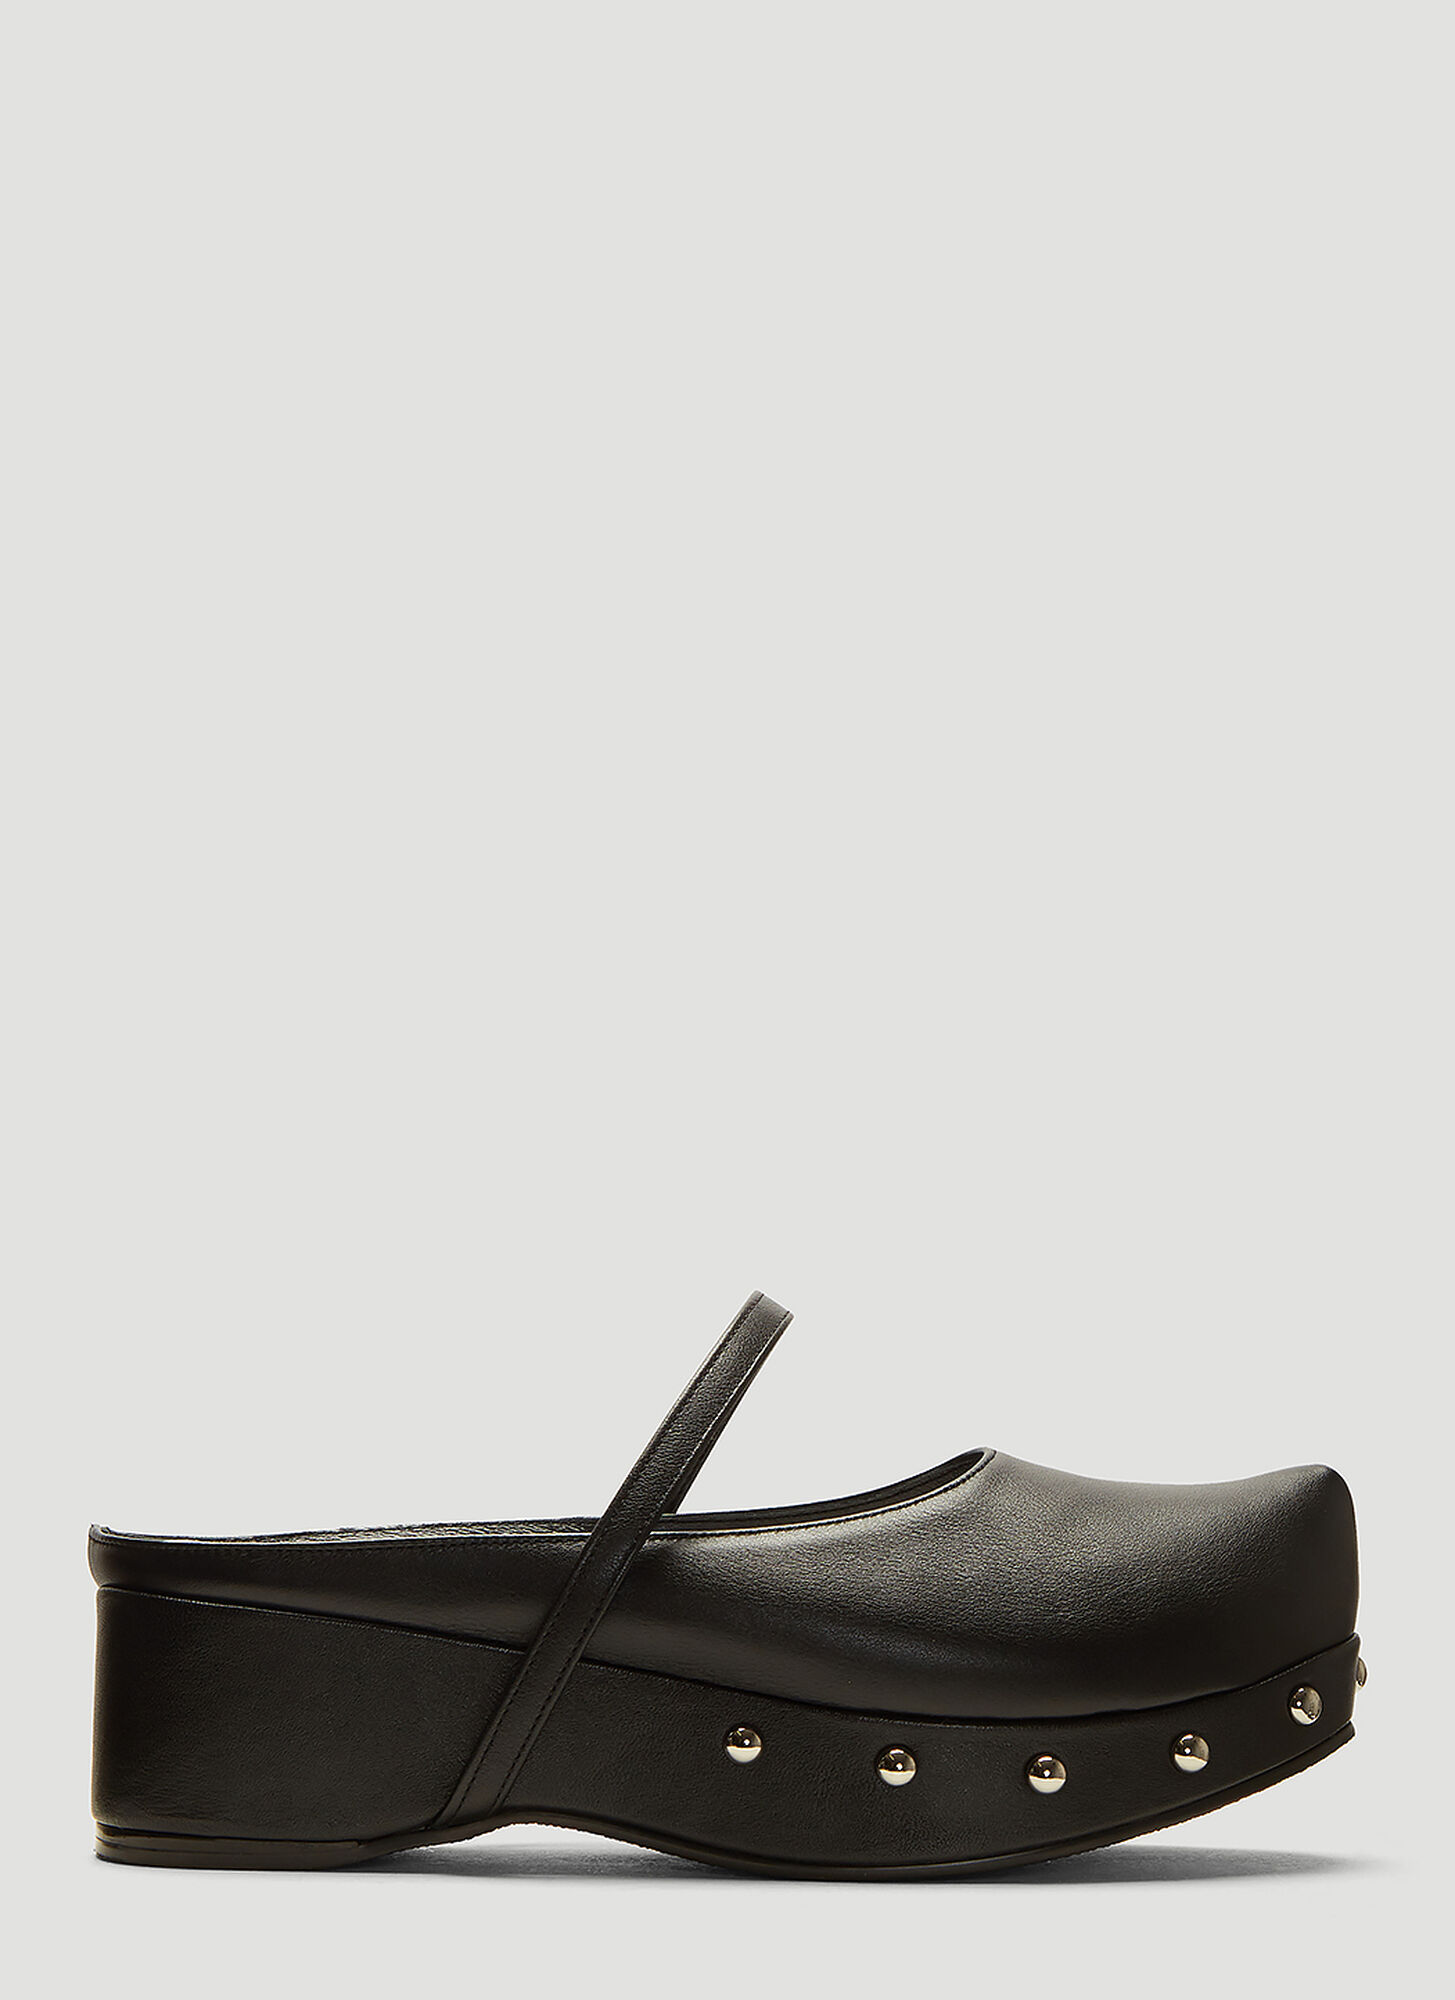 Flat Apartment Platform Mary Jane Mules in Black